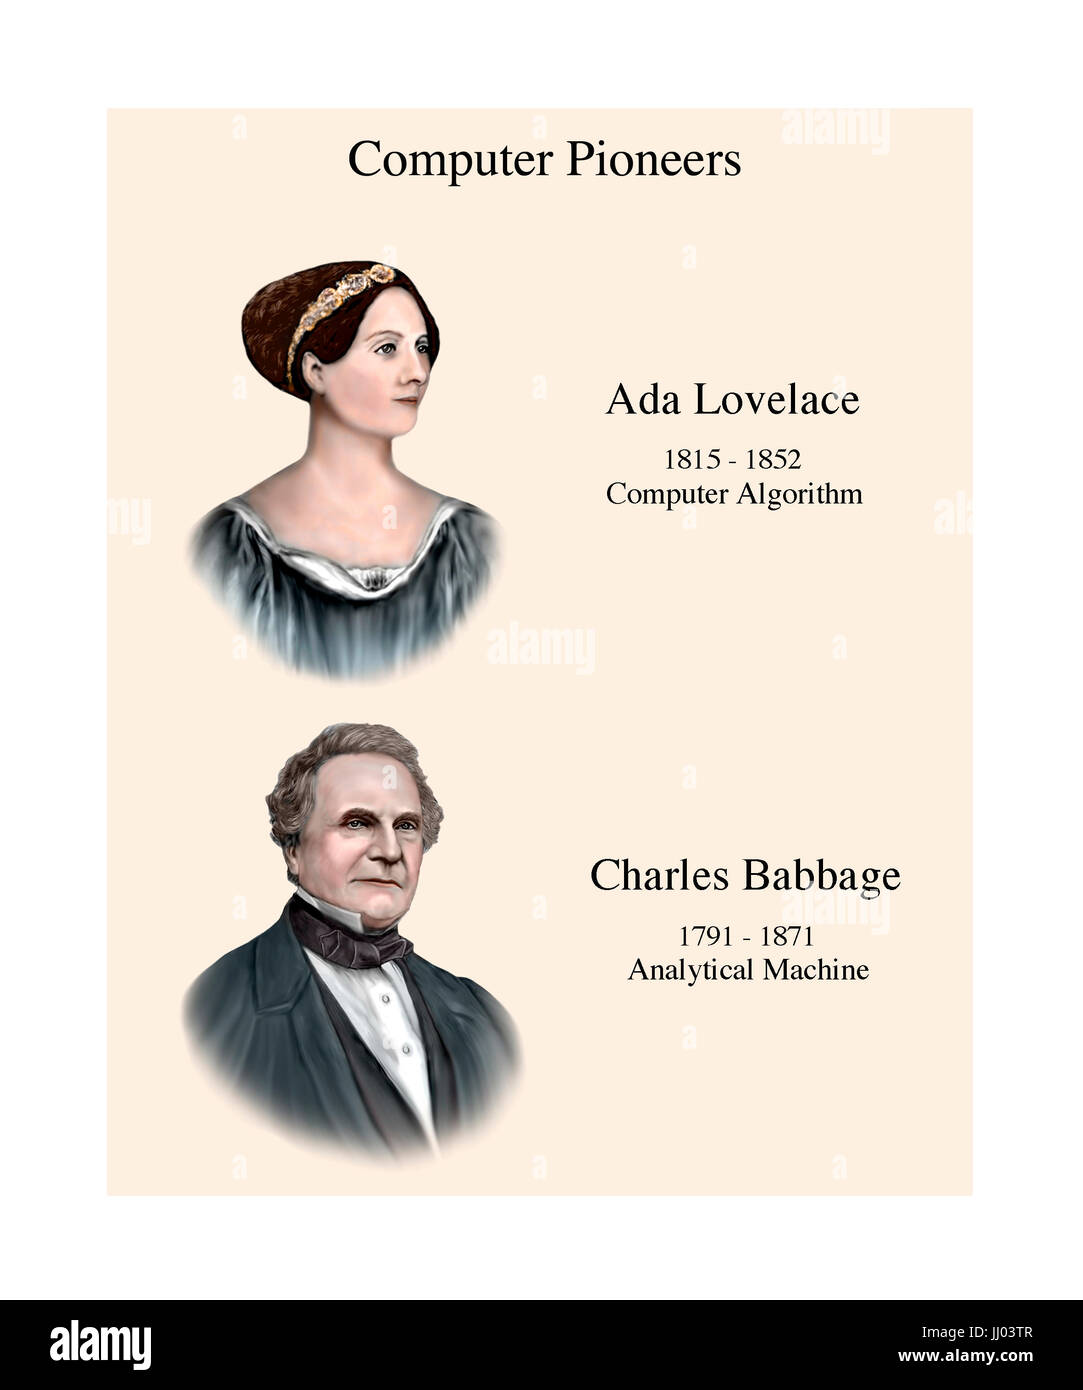 Computer Pioneers Lovelace 1815 - 1852 and Babbage 1791 - 1871 - Stock Image